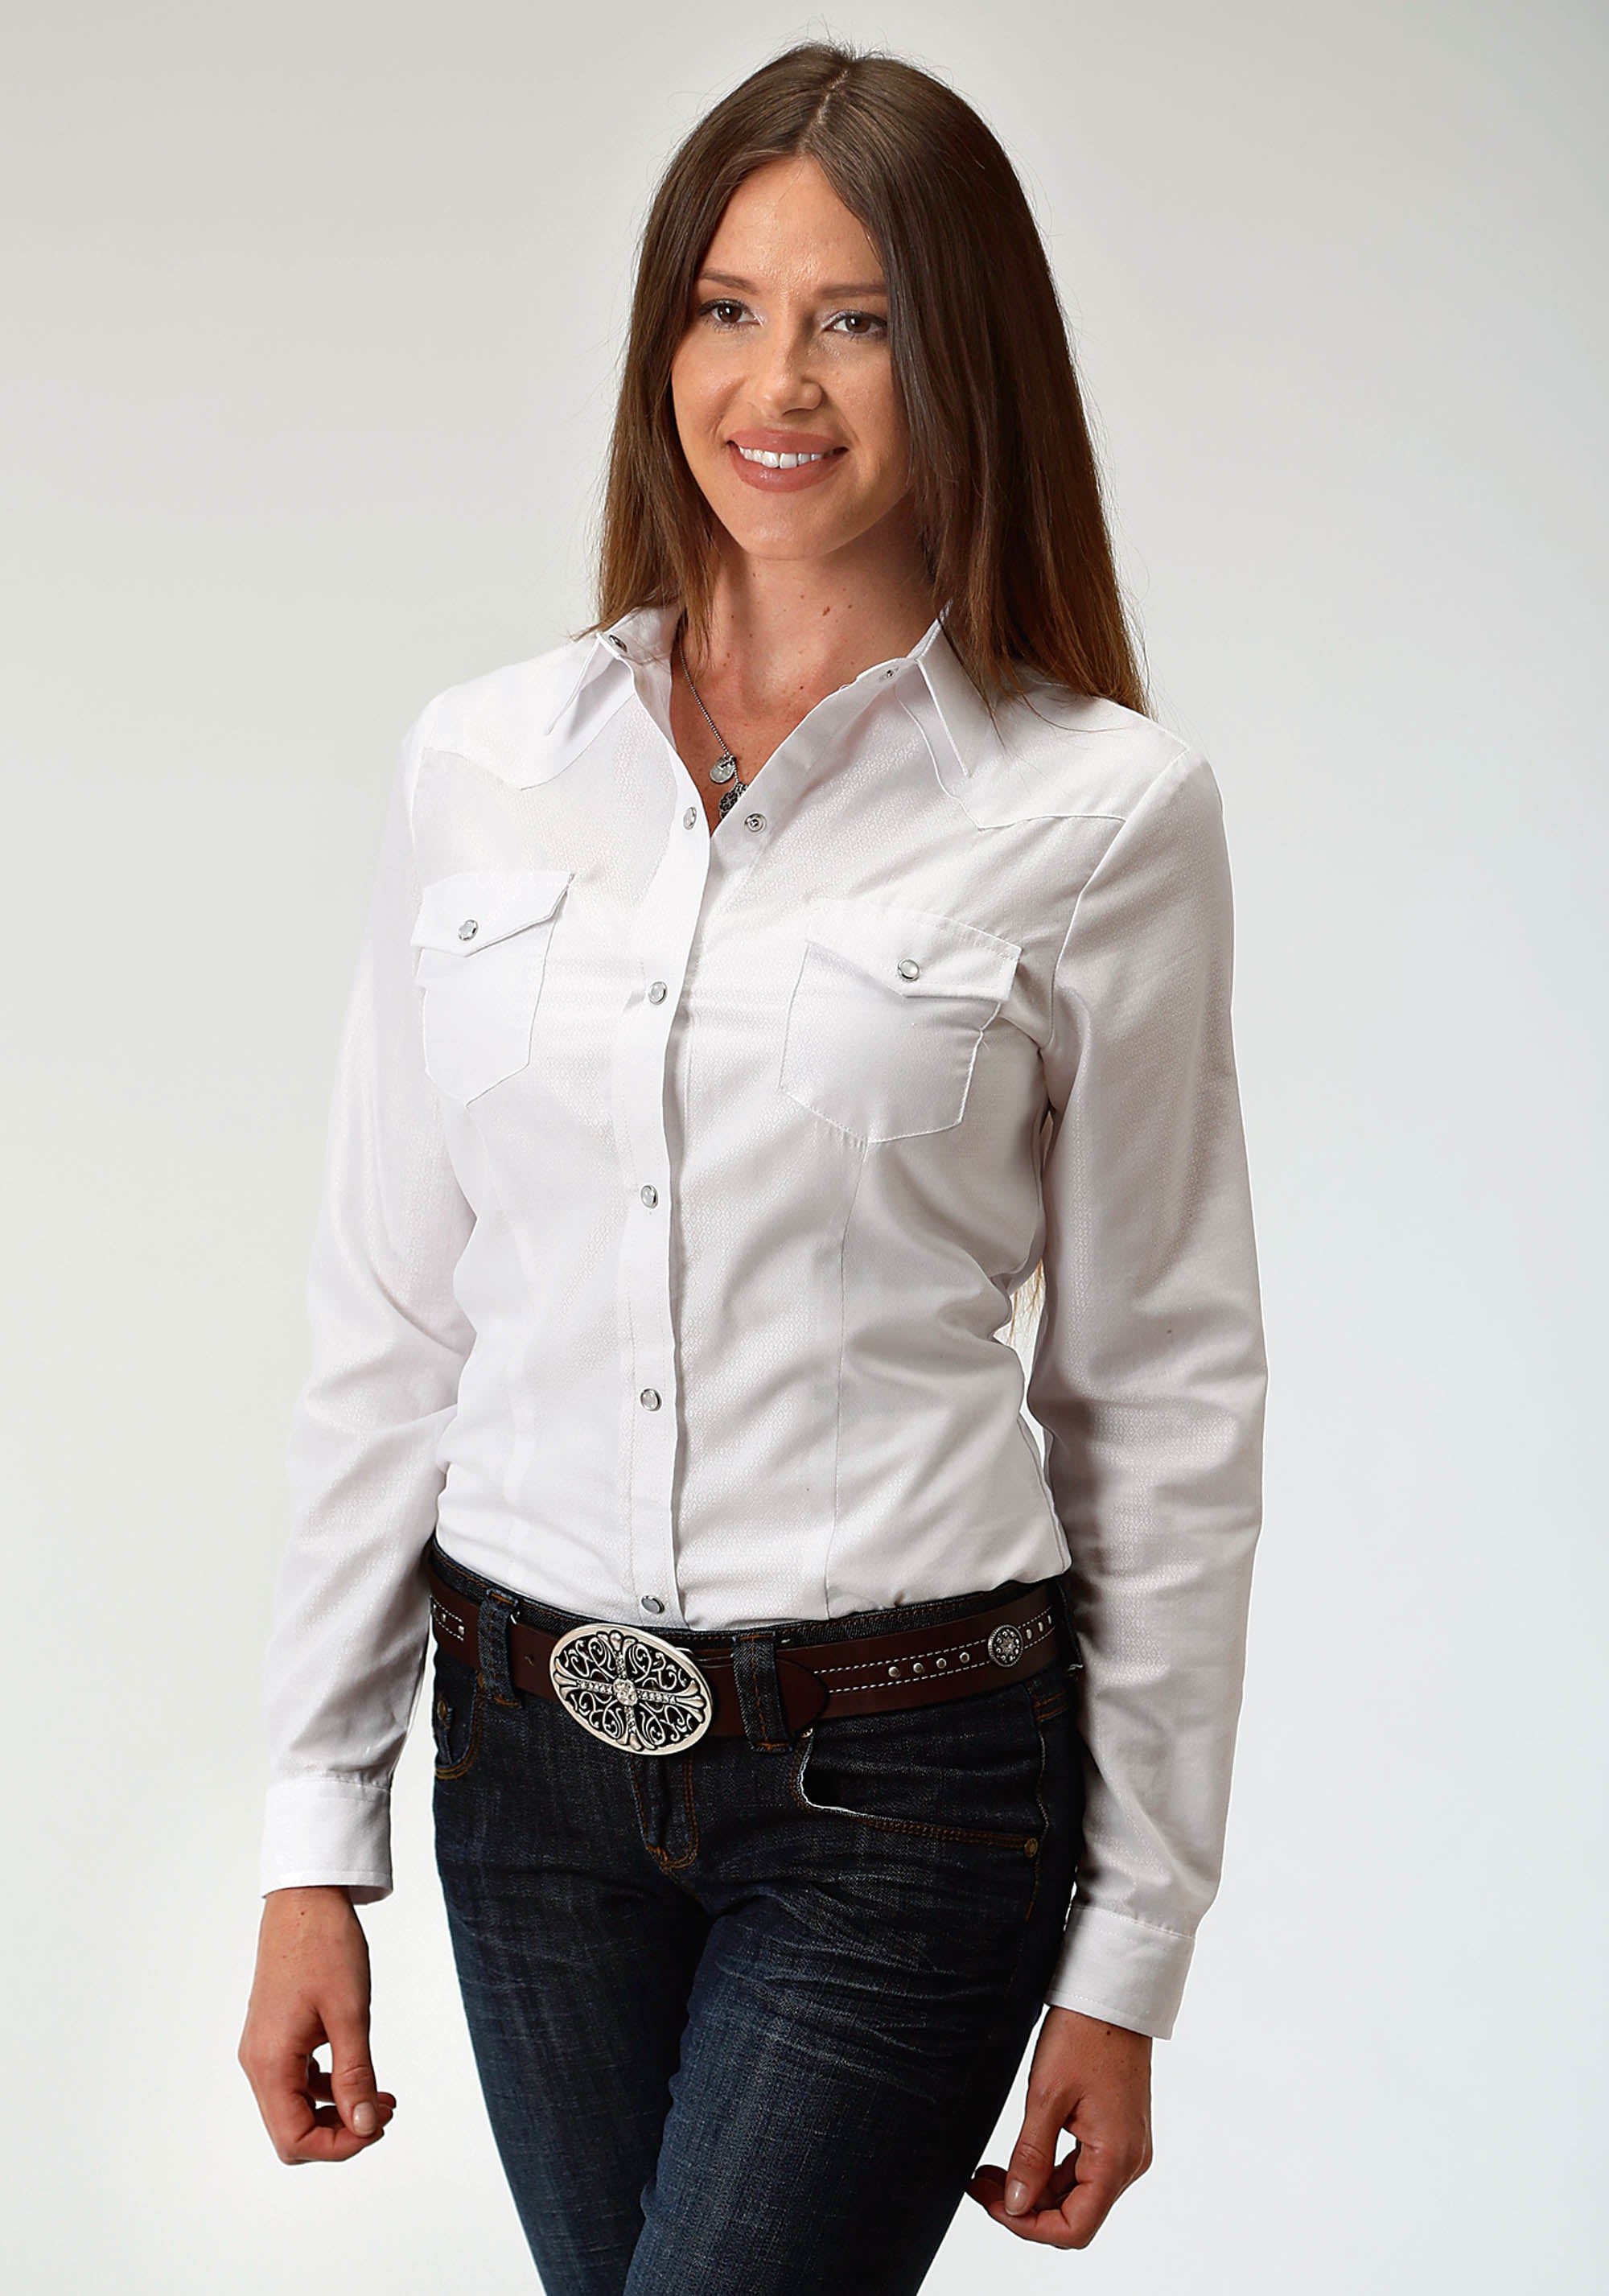 ROPER WOMENS WHITE 3602 WHITE DIAMOND TONE ON TONE KARMAN CLASSICS- 80/20 TONE ON TONE SOLID LONG SLEEVE